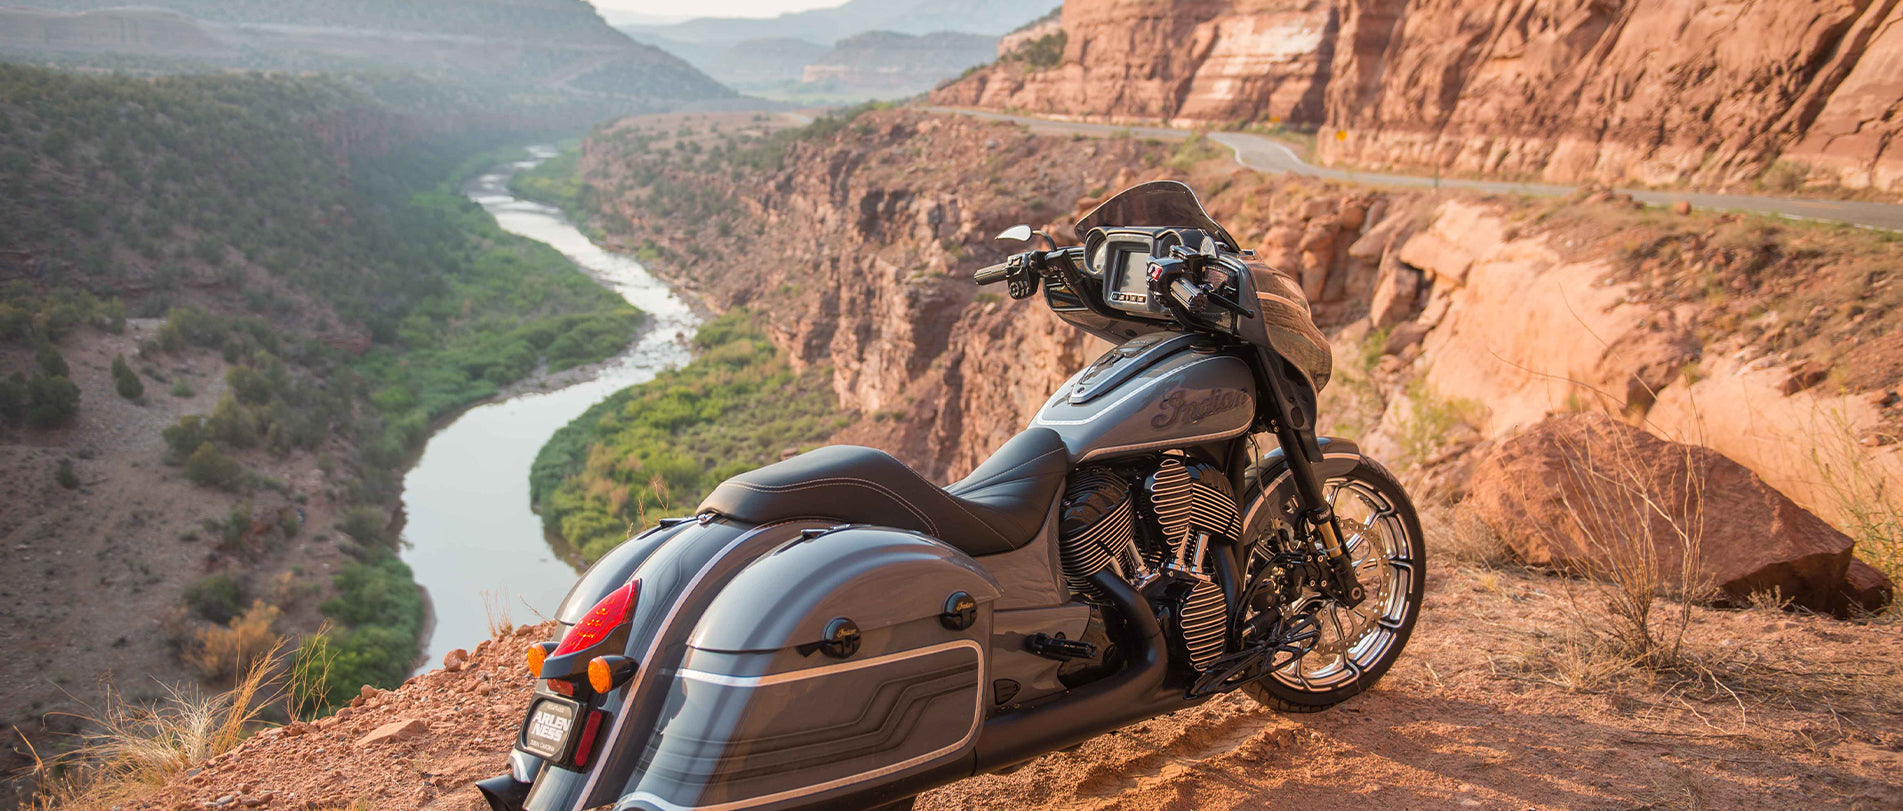 Air Cleaners for Indian Motorcycle®